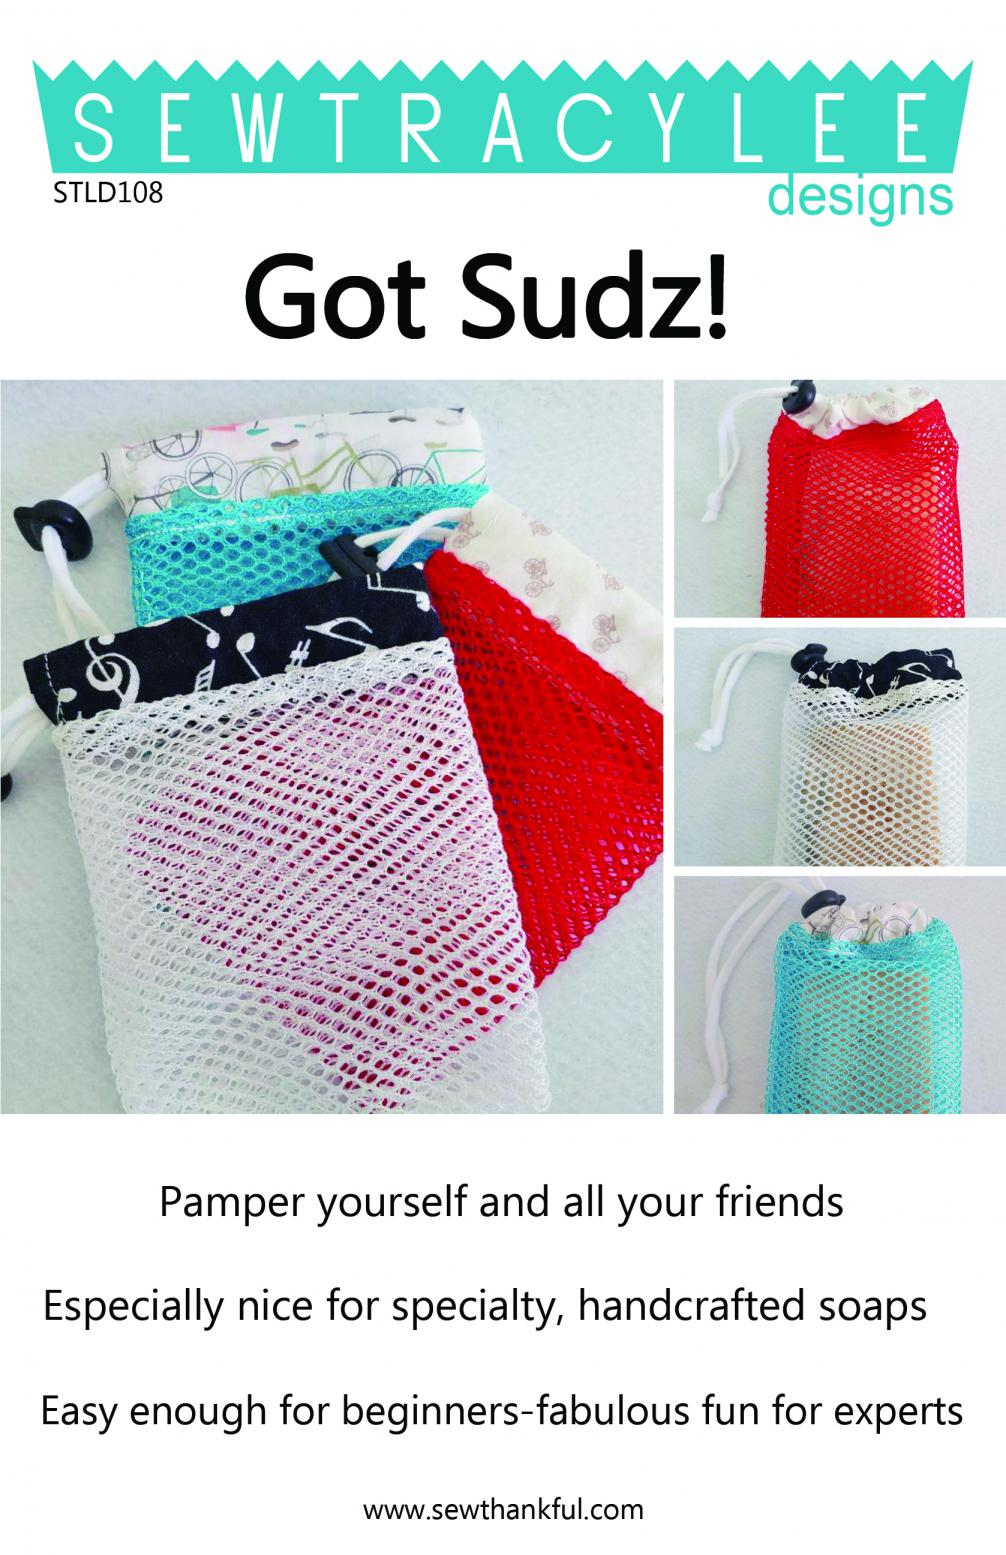 Download - Got Sudz! Spa Exfoliating Scrubby and Soap-Saver Sack sewing pattern from Sew TracyLee Designs